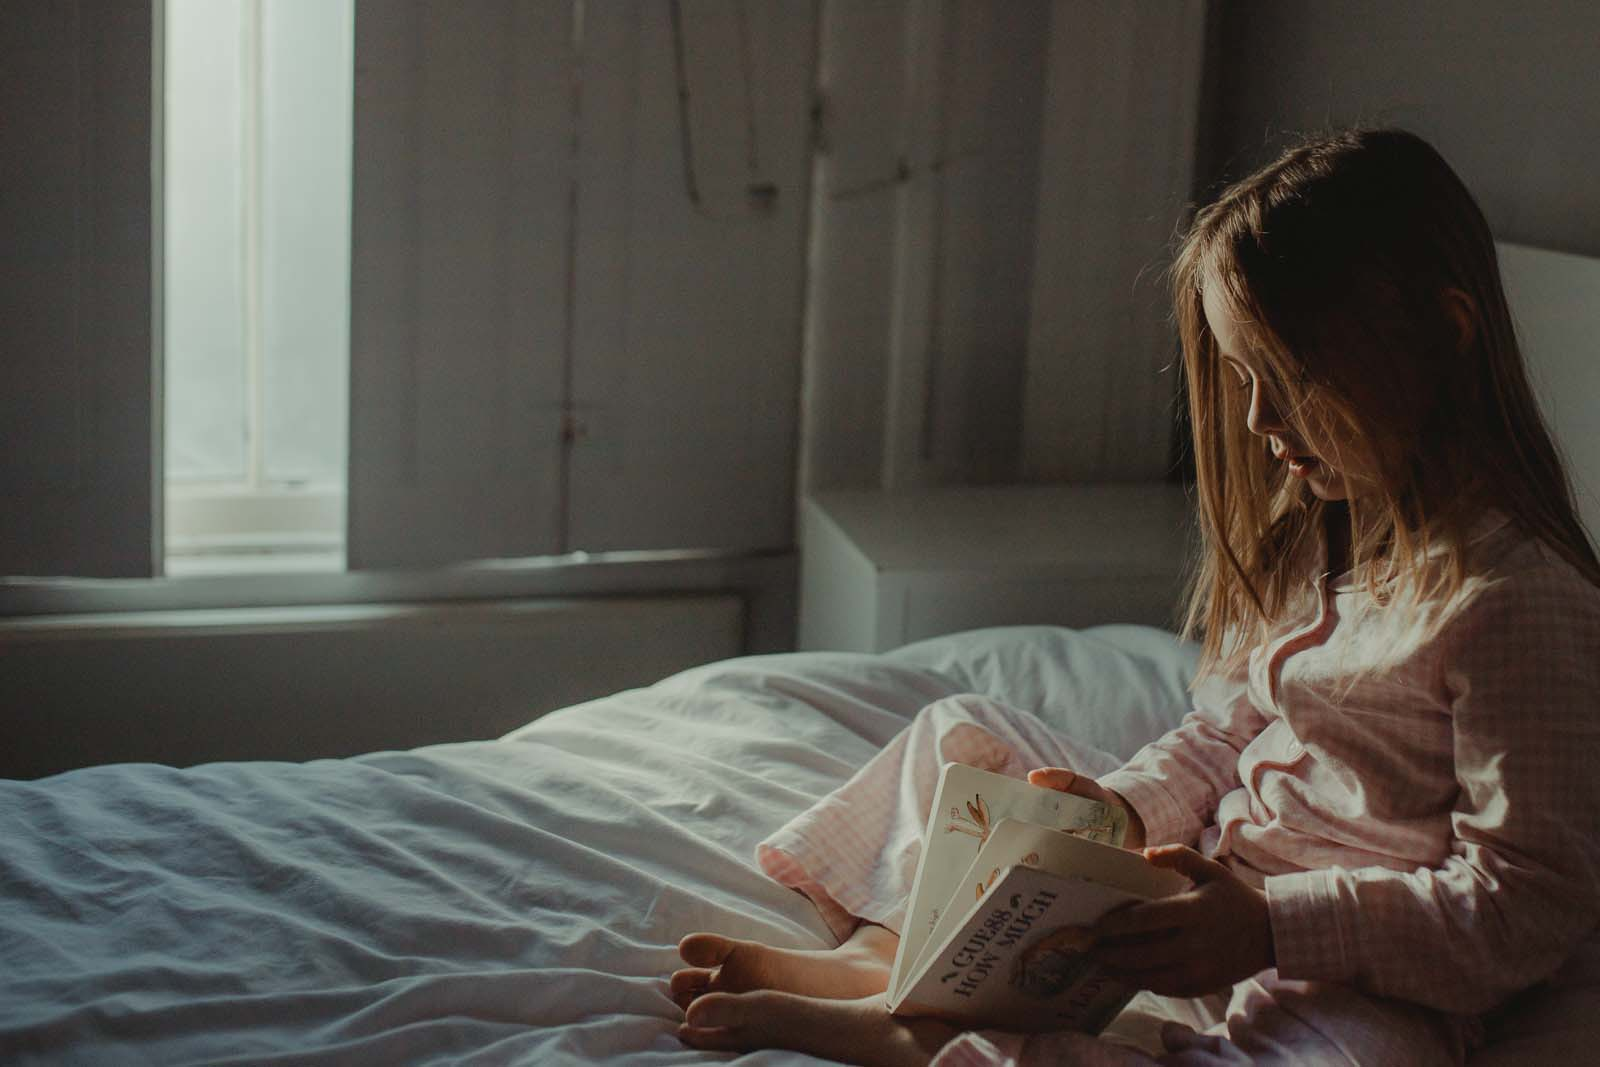 Girl reading. Finding balance with photography and motherhood